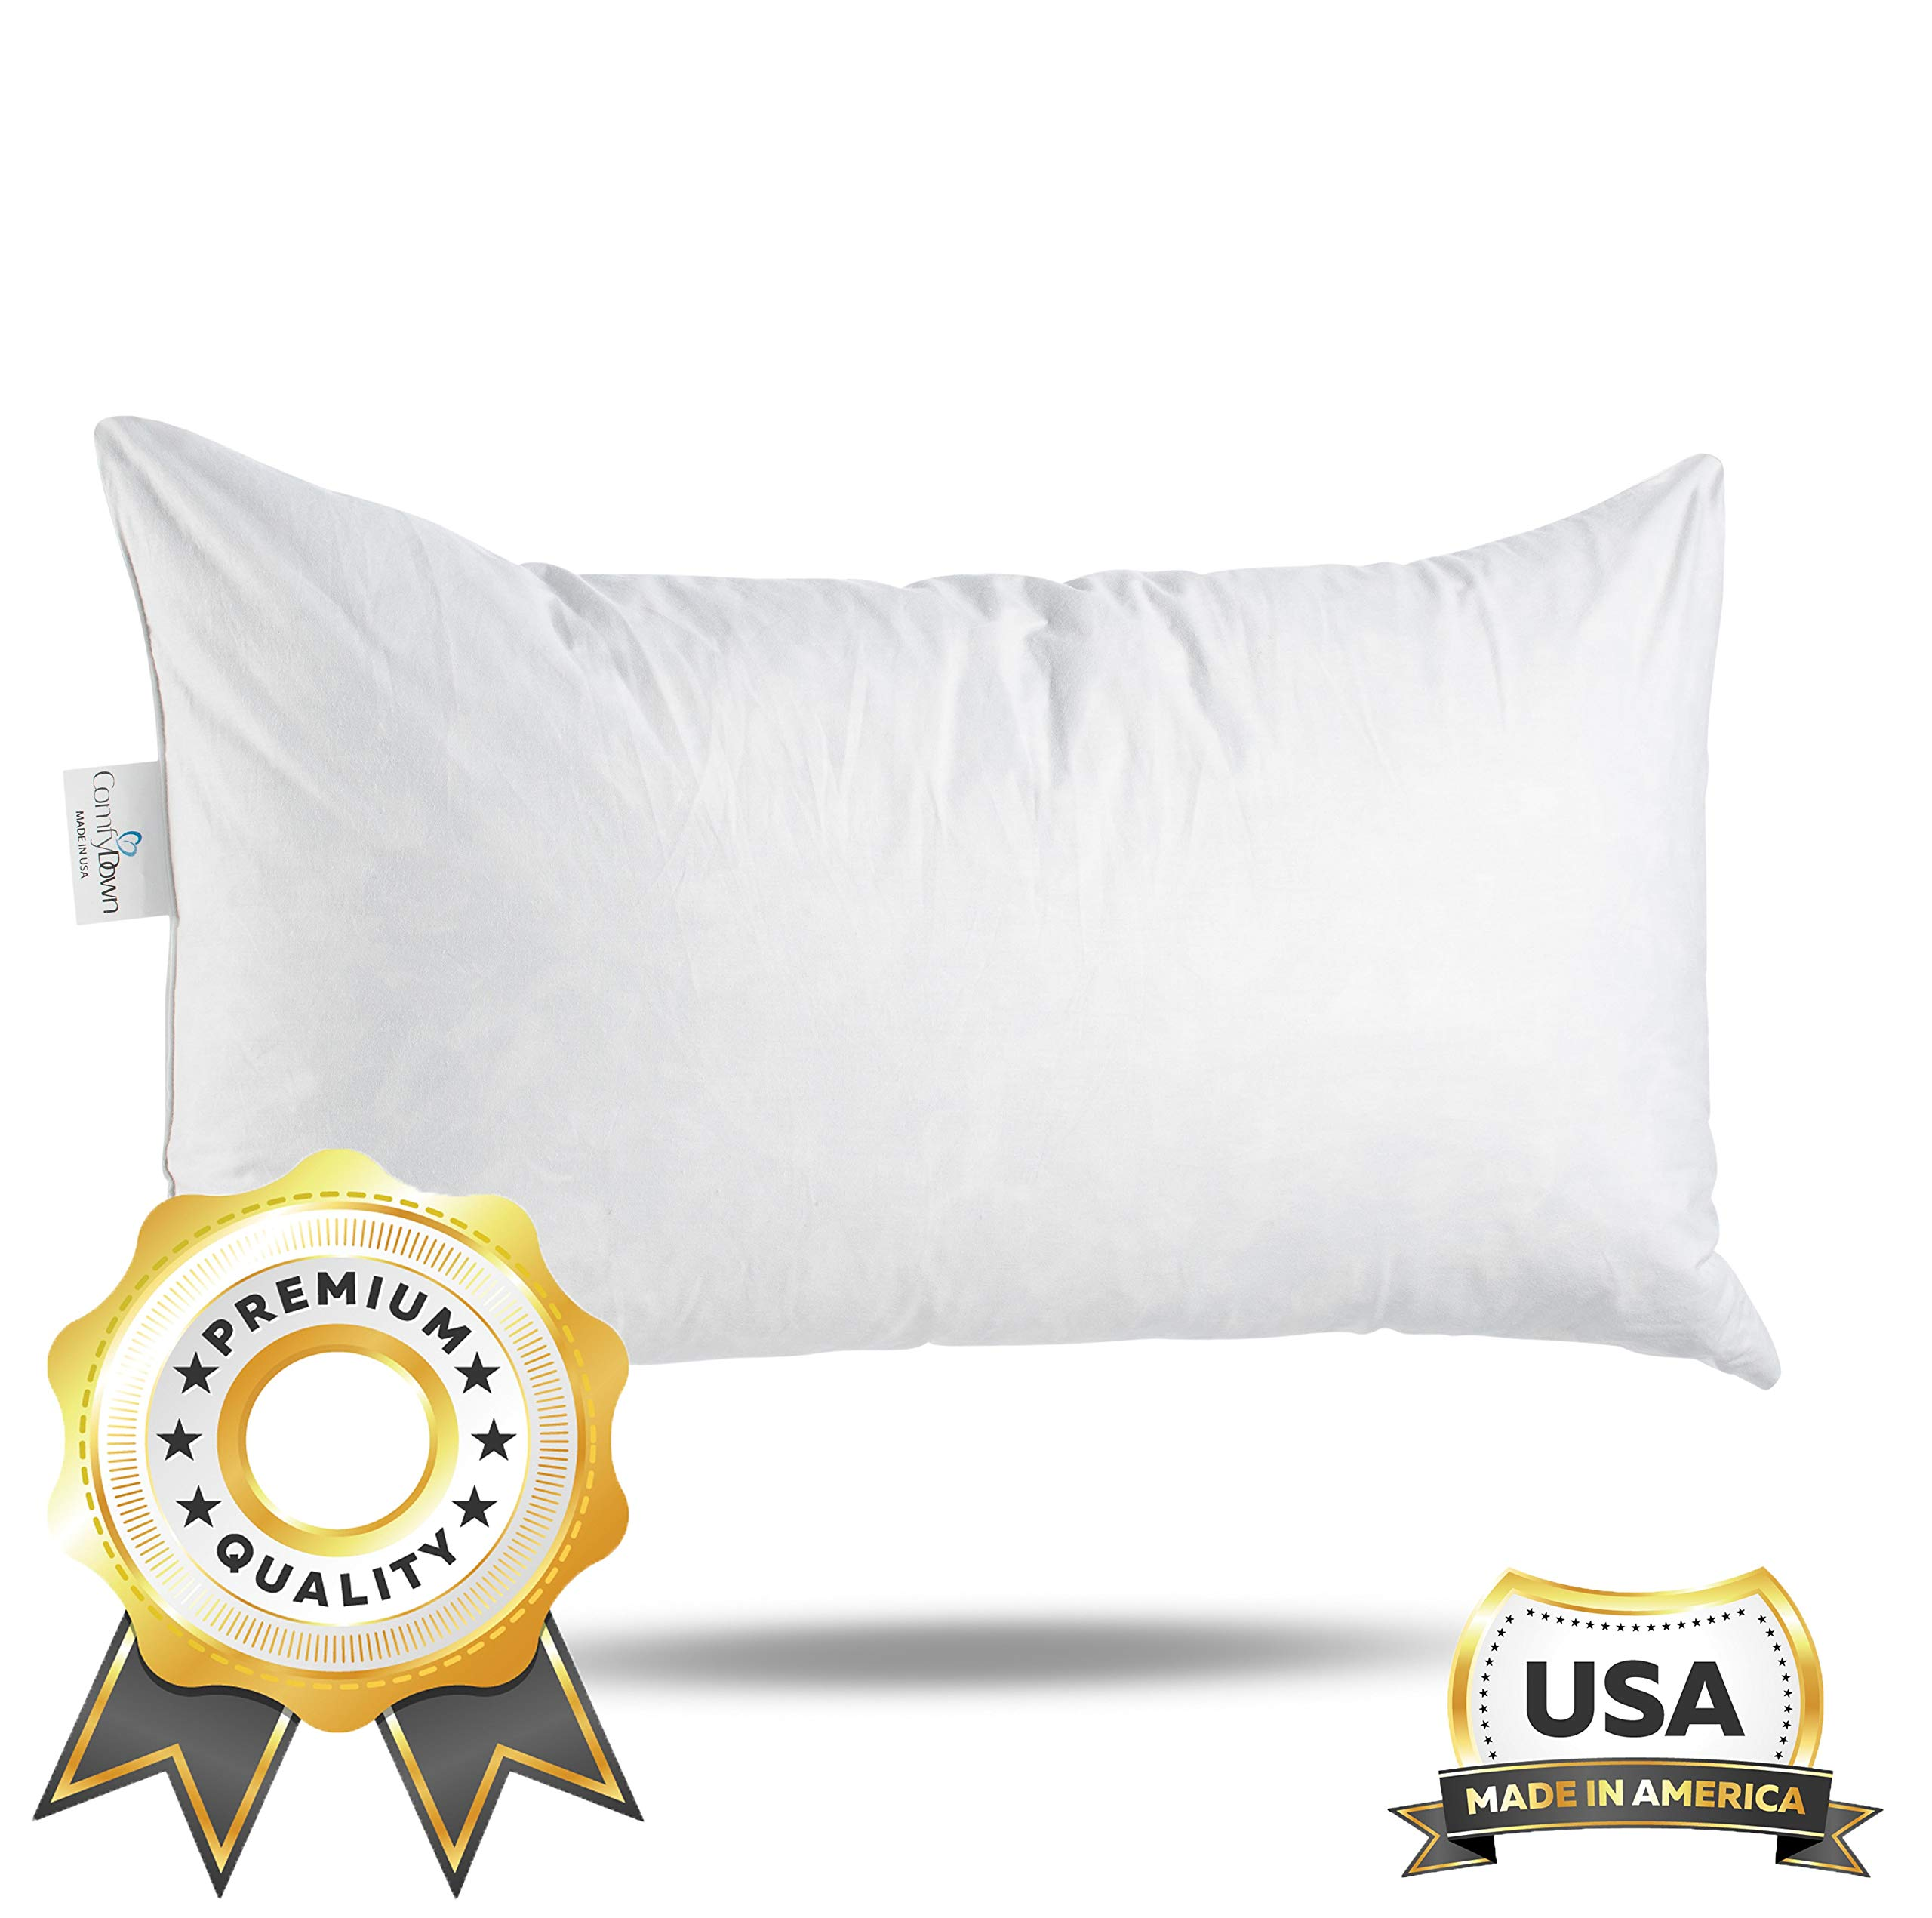 comfydown throw pillow inserts